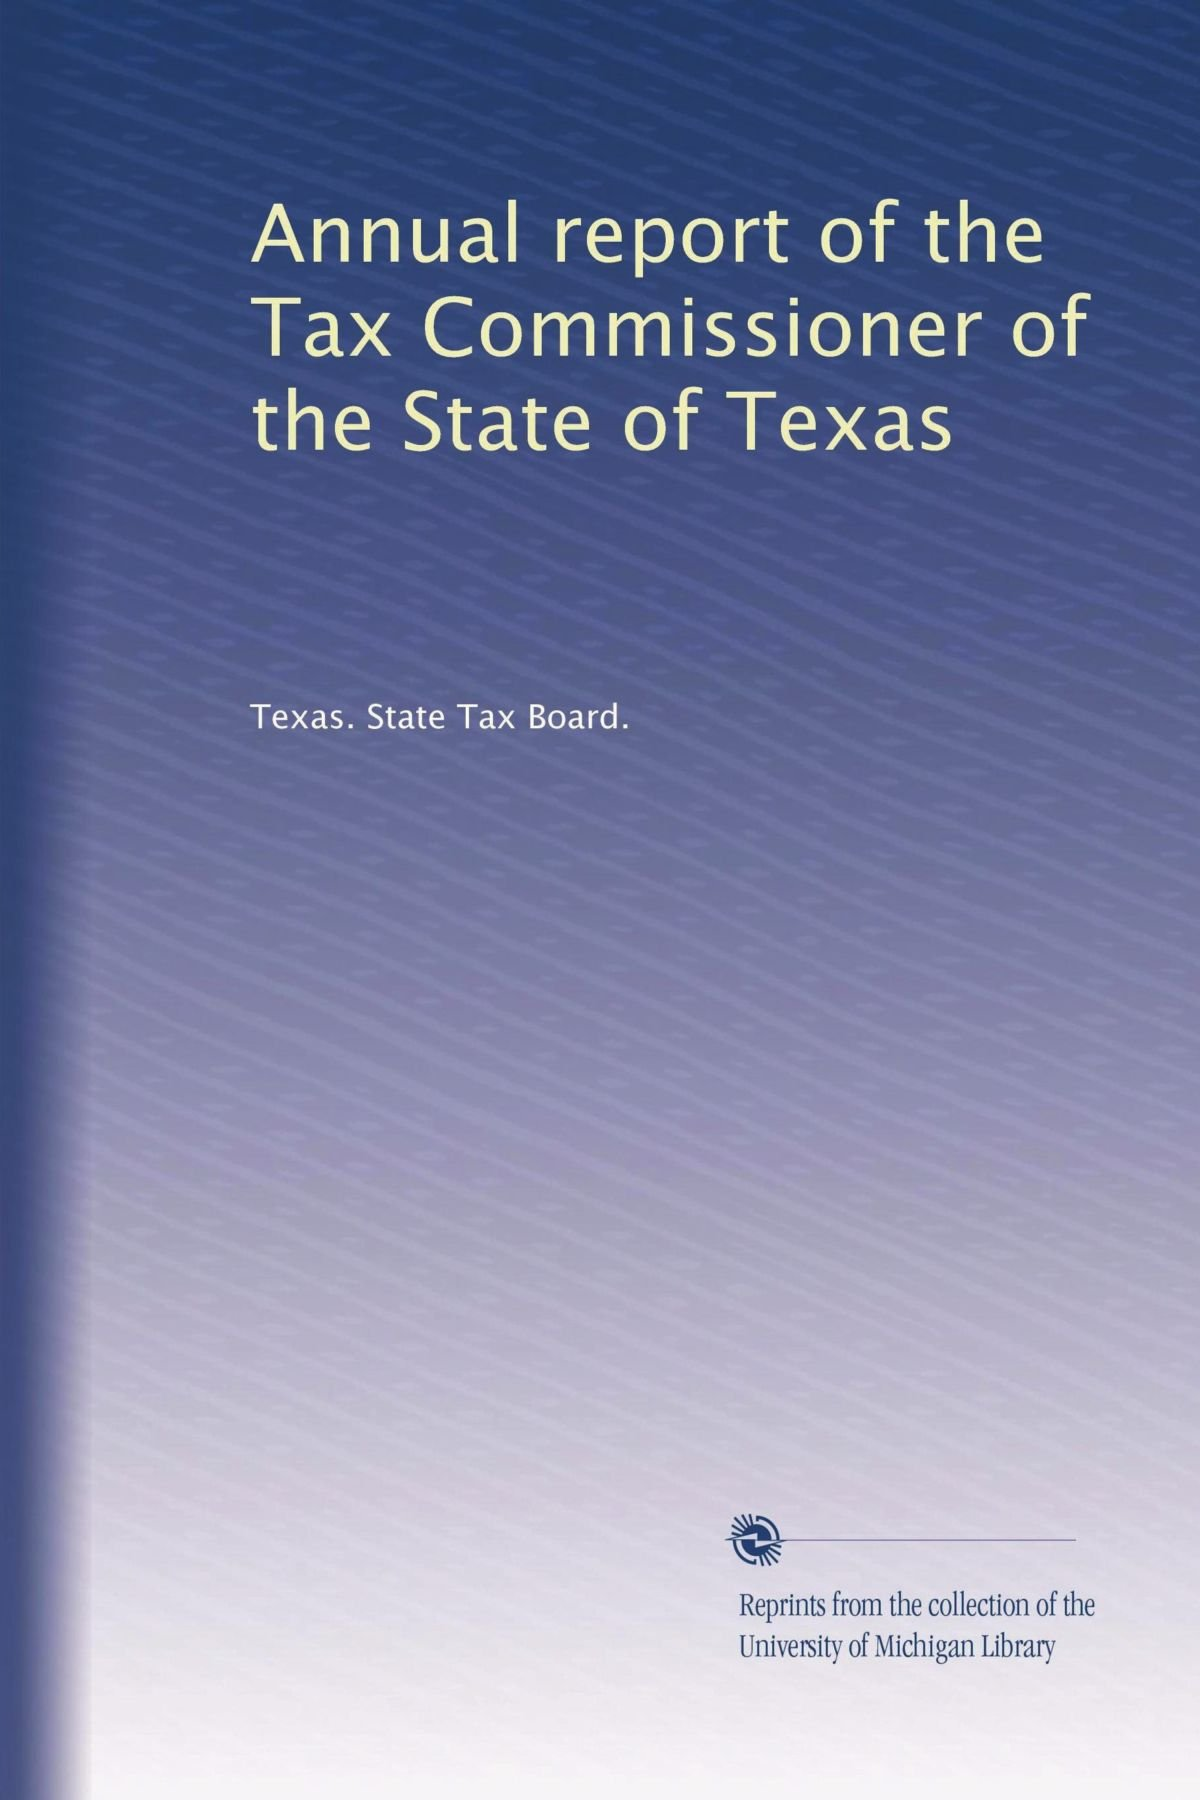 Download Annual report of the Tax Commissioner of the State of Texas pdf